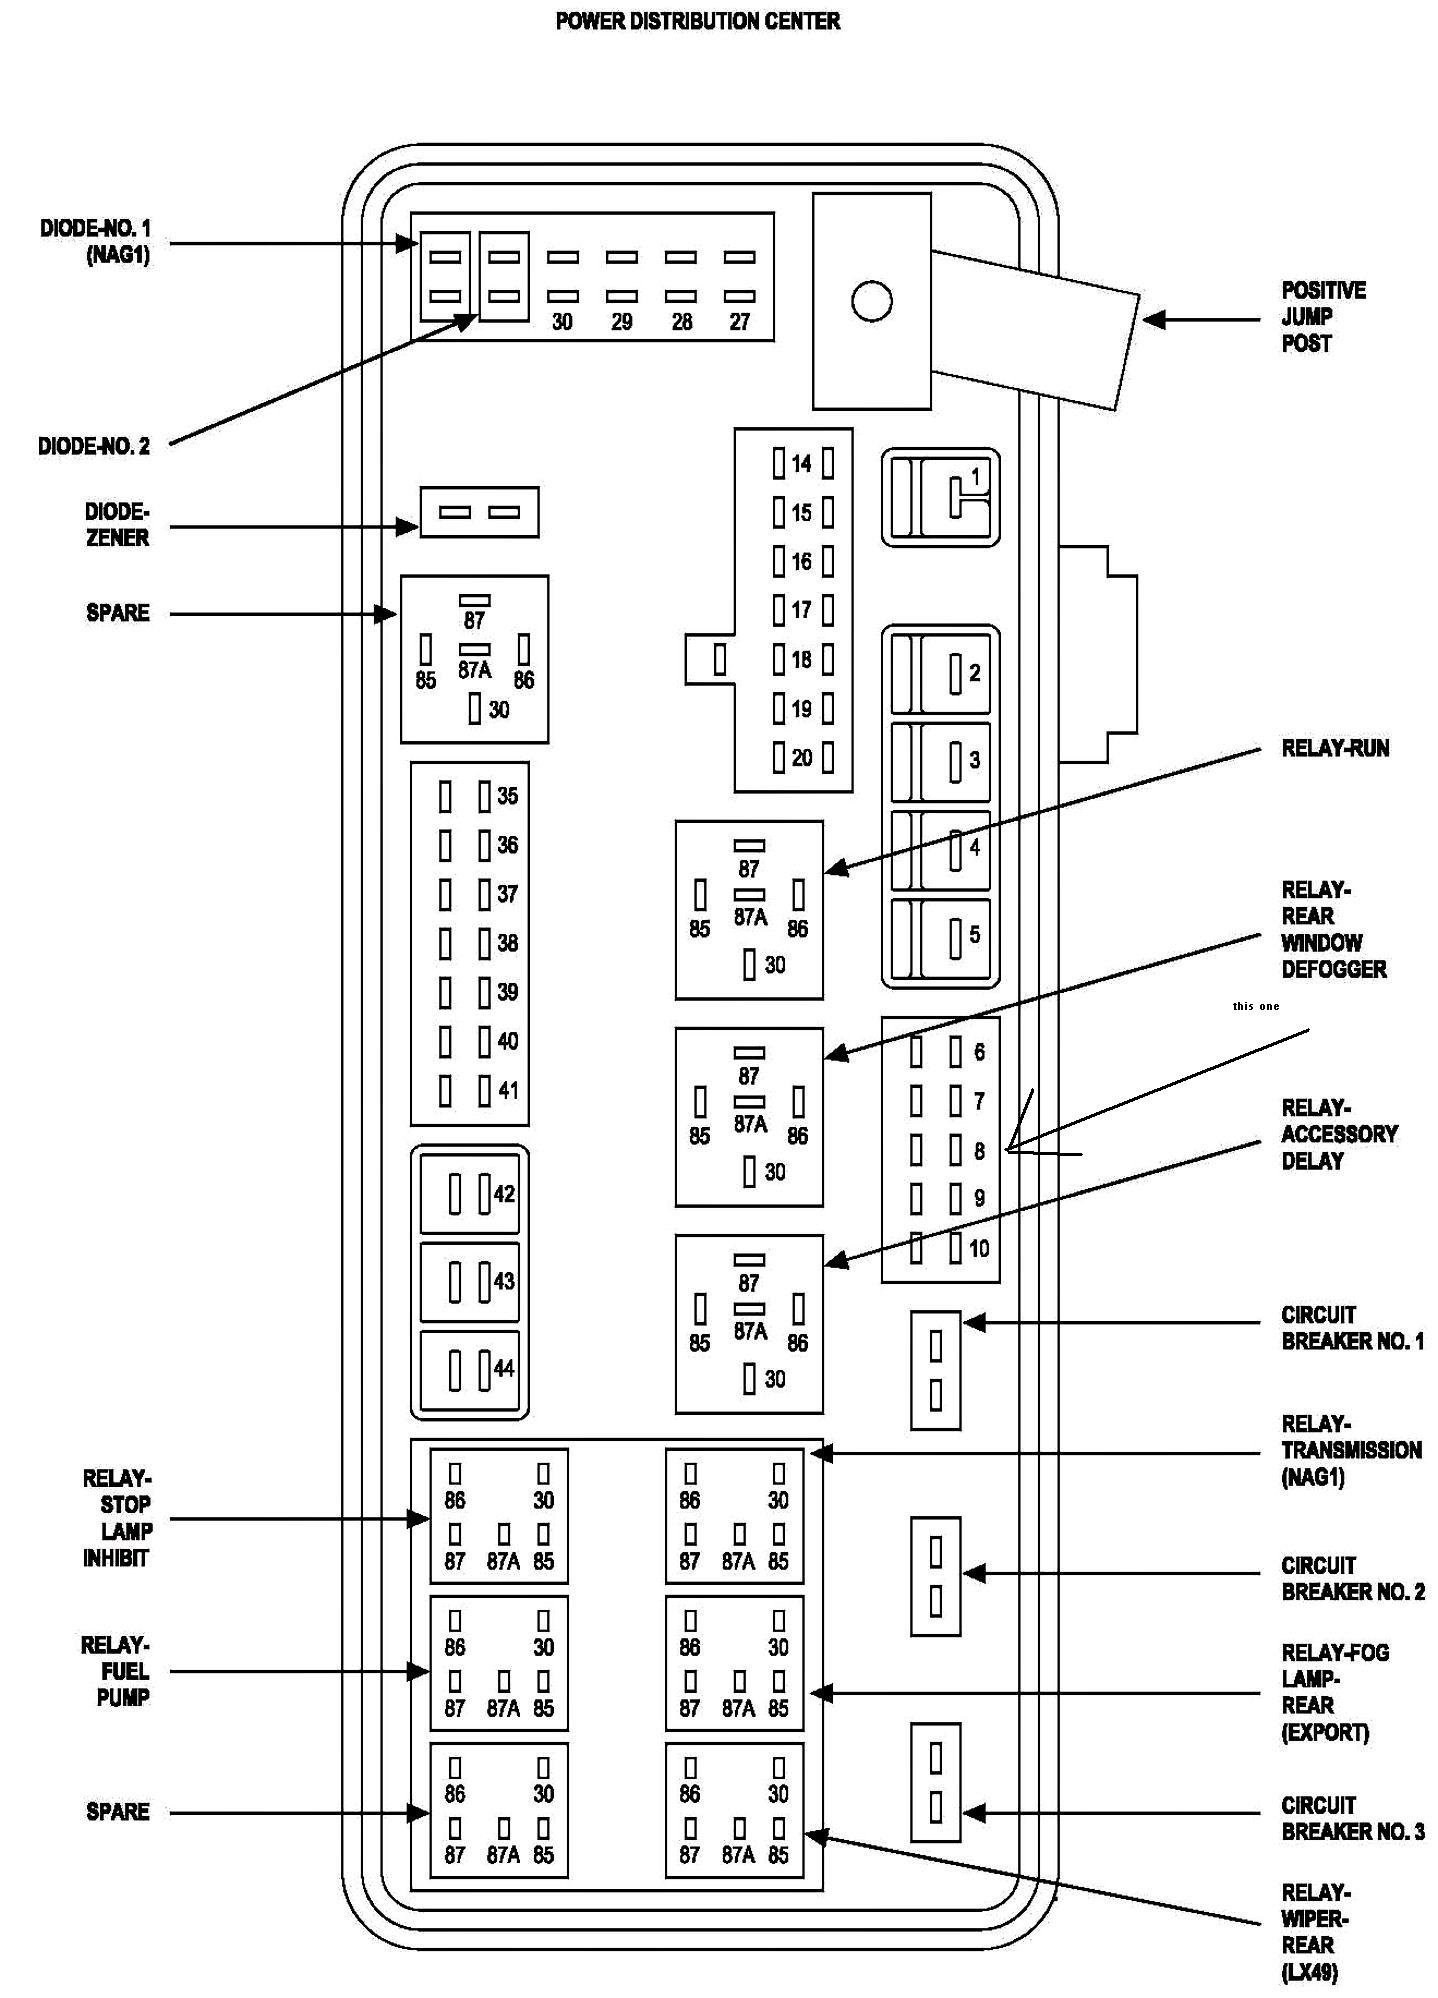 Wiring Diagram For 2000 Plymouth Neon Windstar Fuse Box Library Diagrams Ford Lx